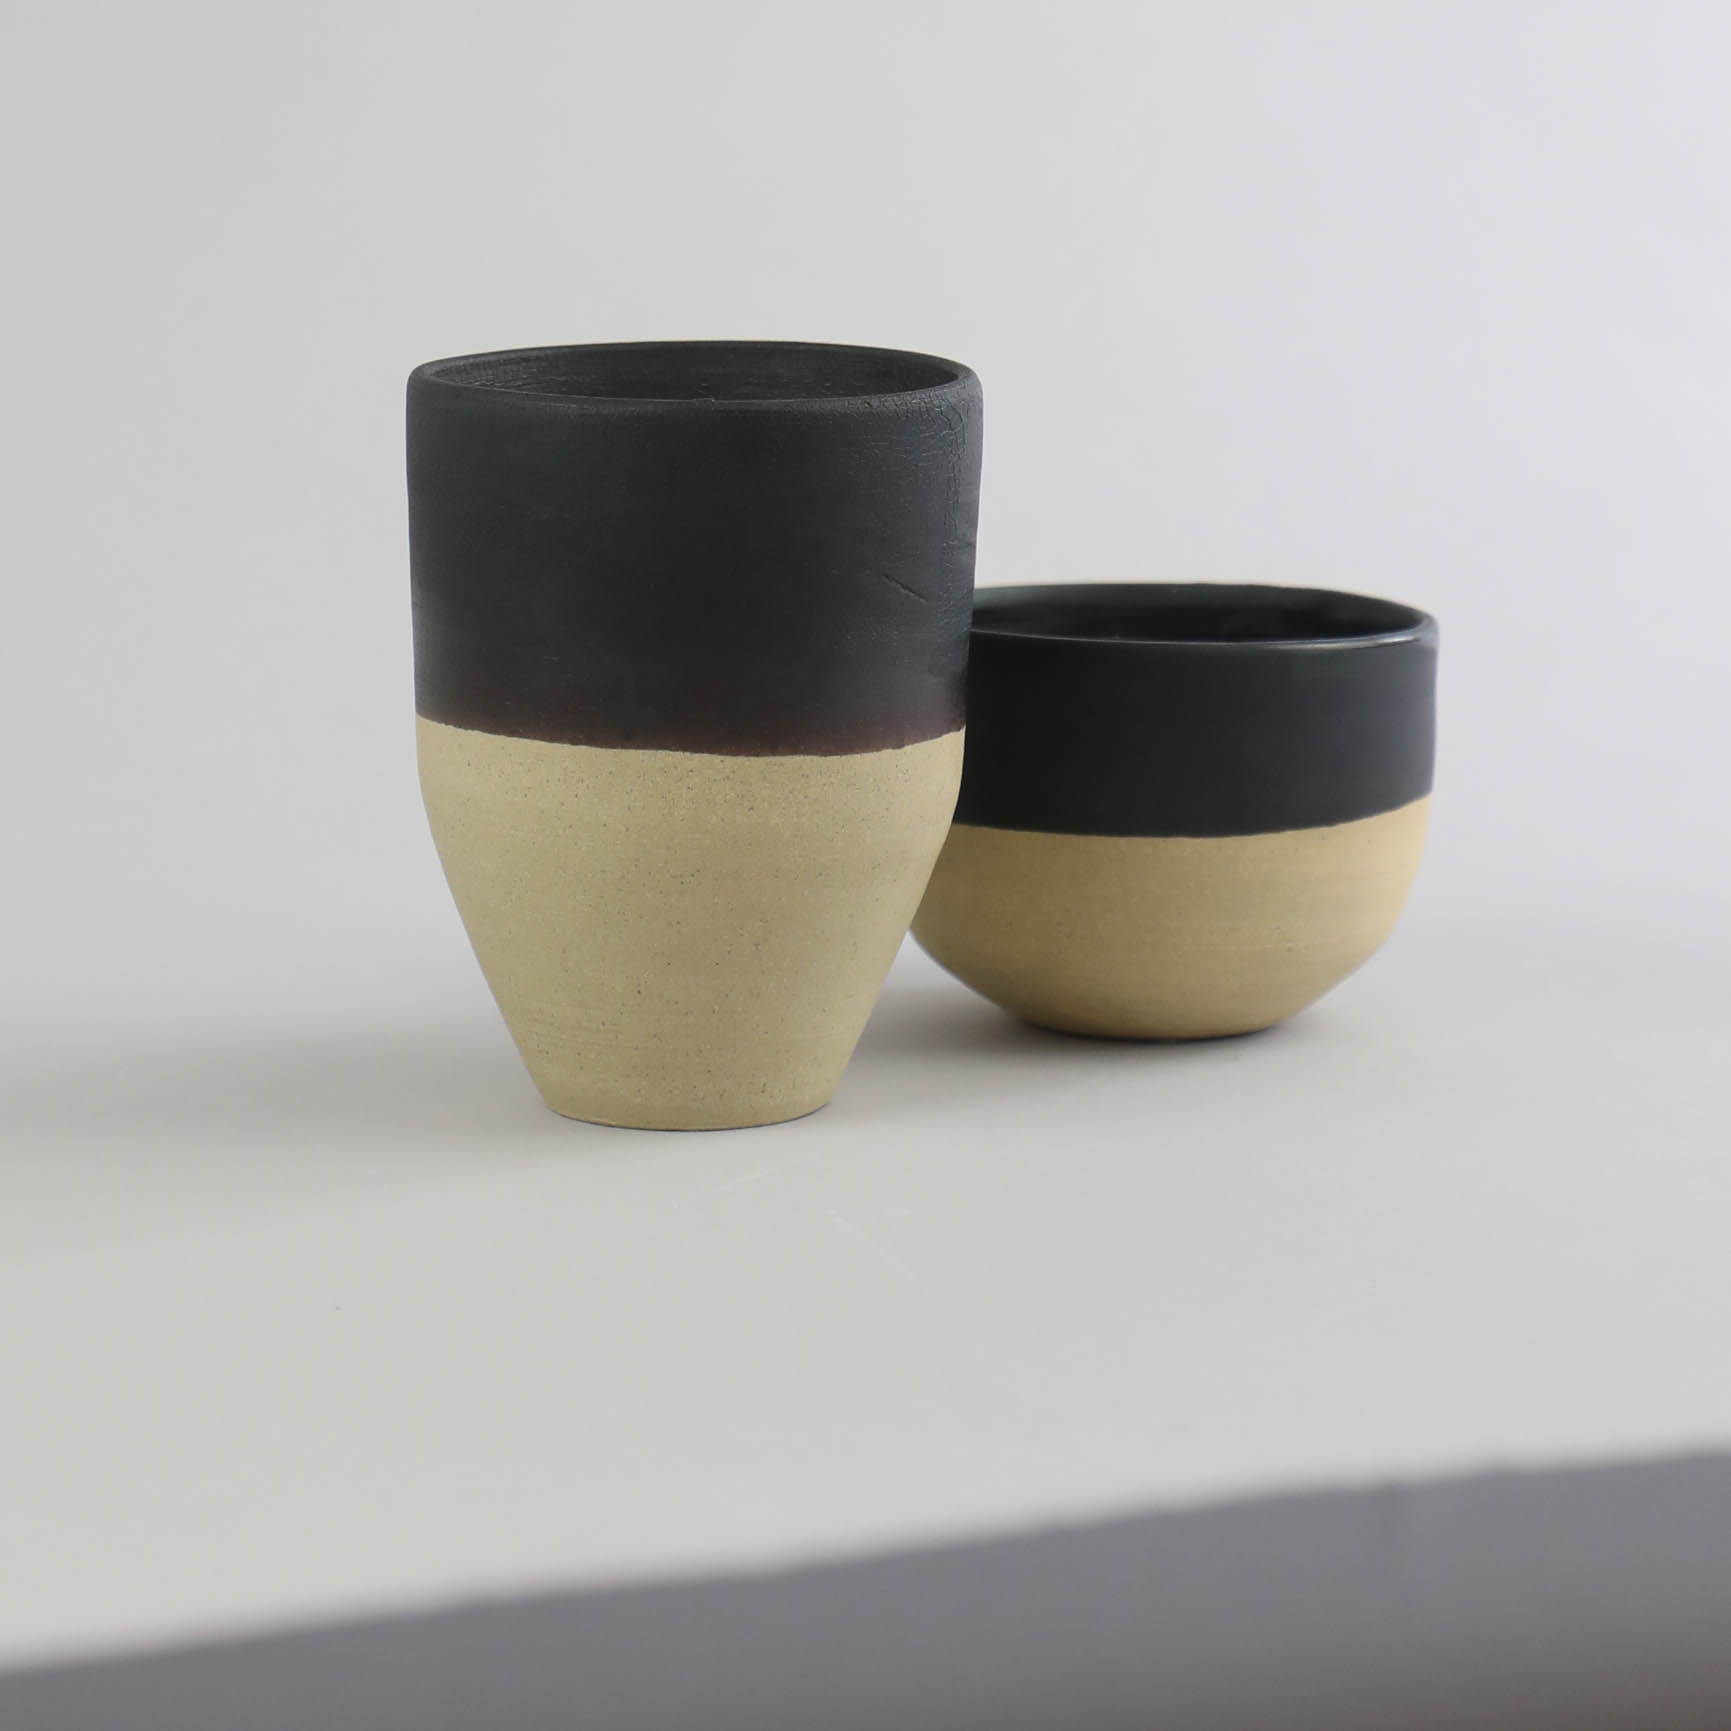 IN GOOD COMPANY x VES. Two-Tone Vessel w: Candle_DUO_Black_RP99_2.jpg